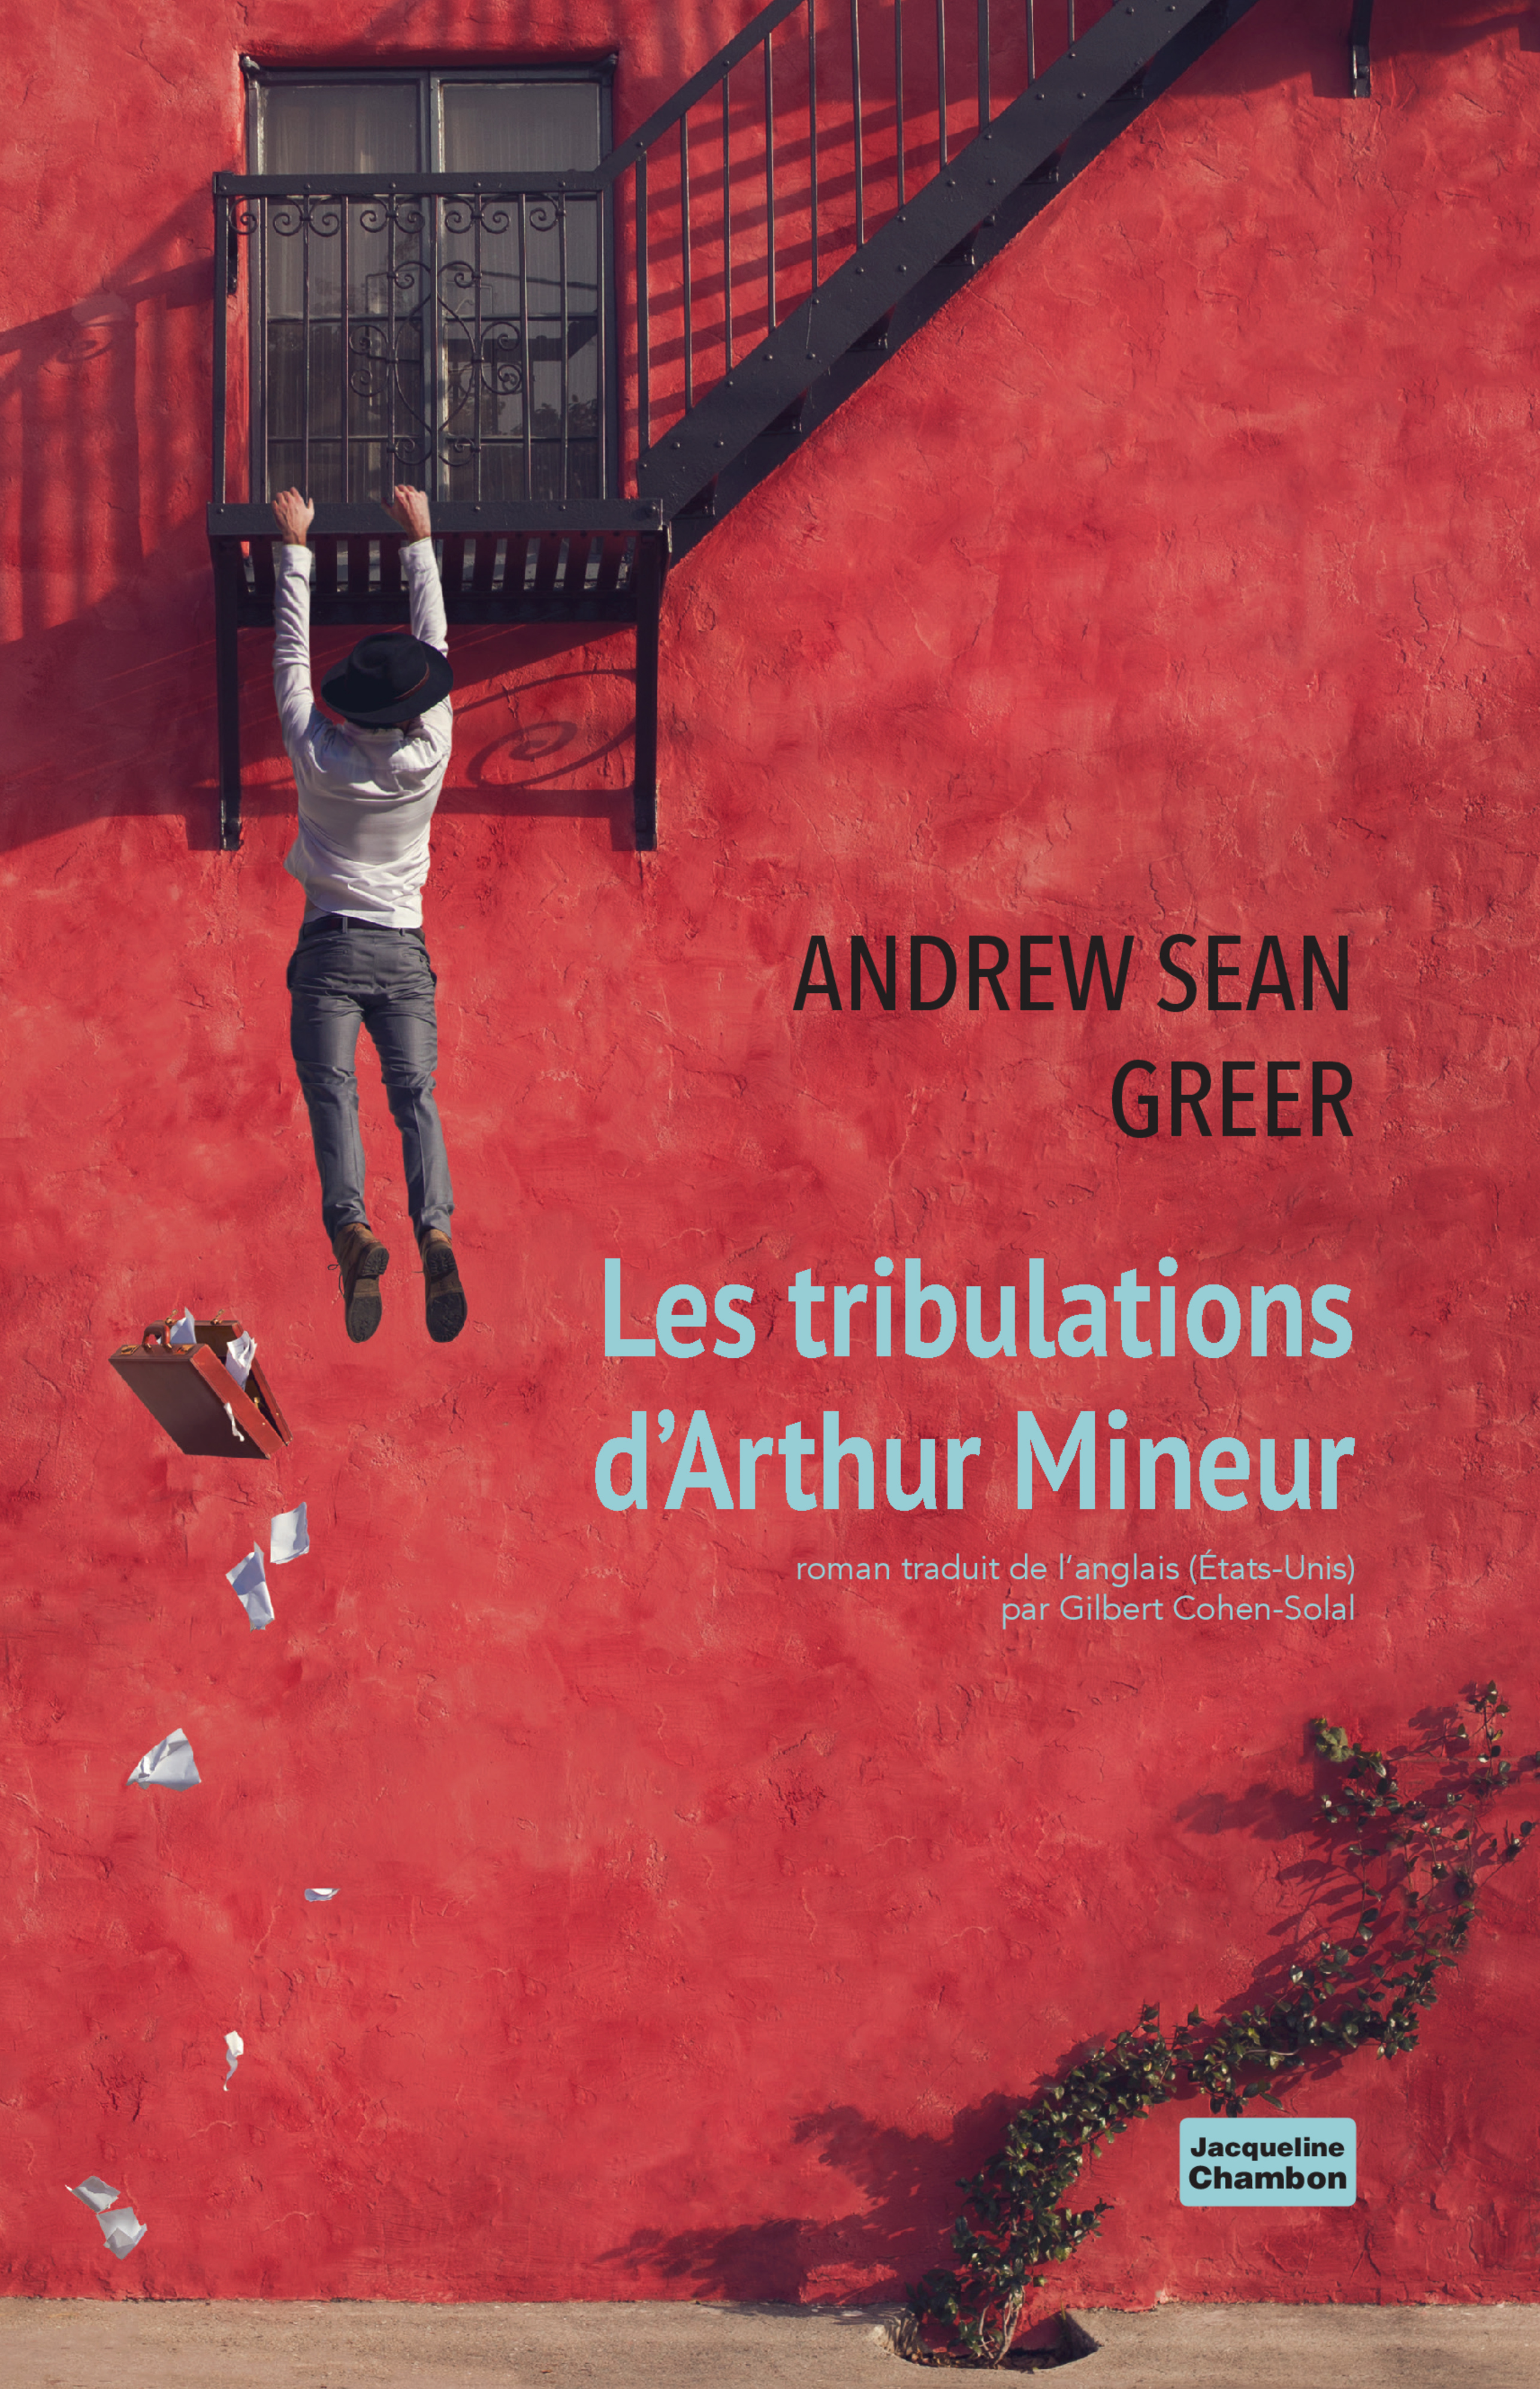 Les tribulations d'Arthur Mineur | Greer, Andrew sean